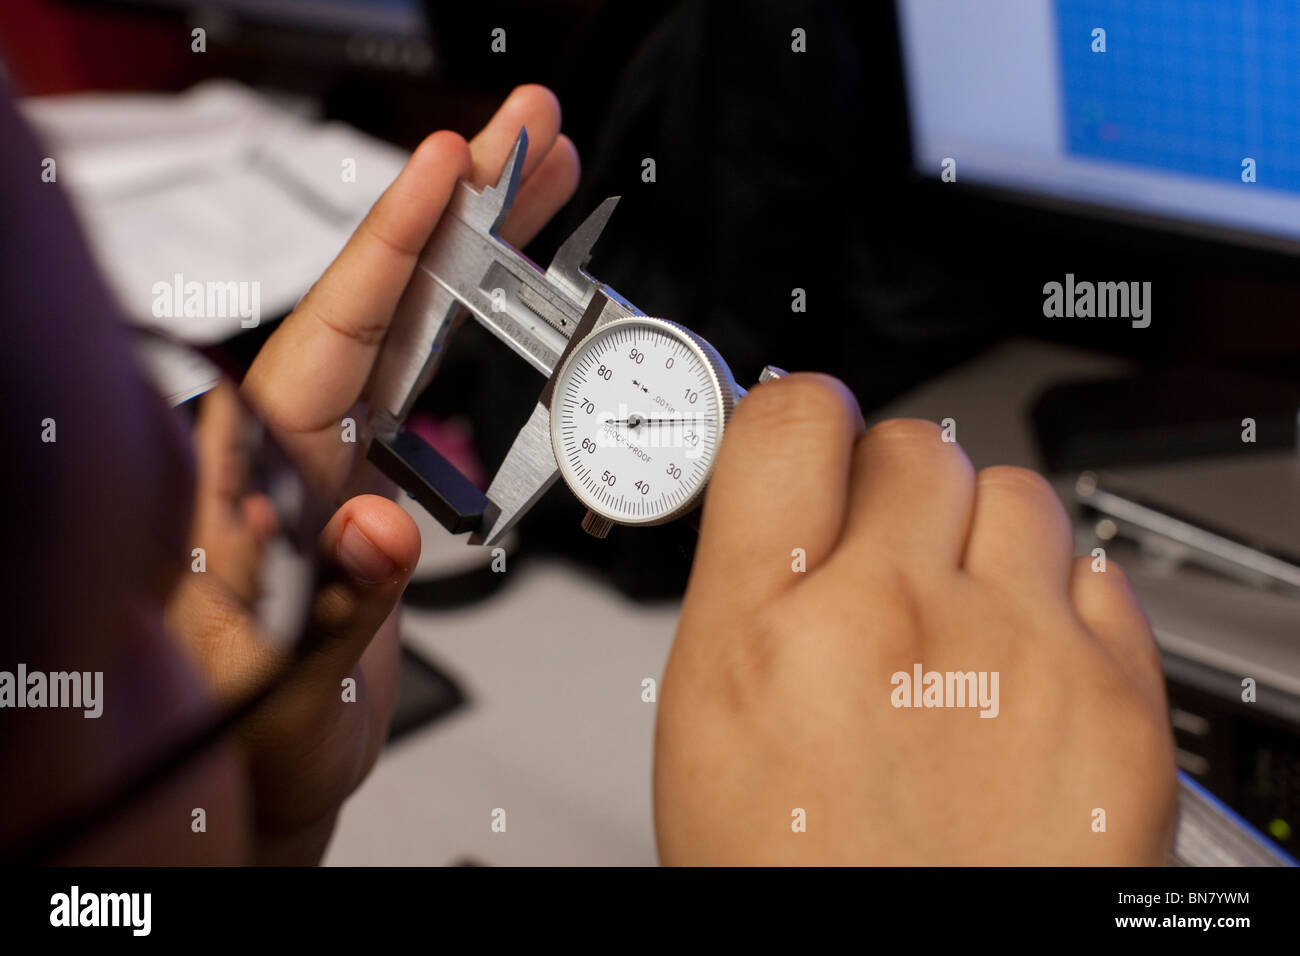 High school boy uses a caliper to take a measurement in freshman engineering class - Stock Image